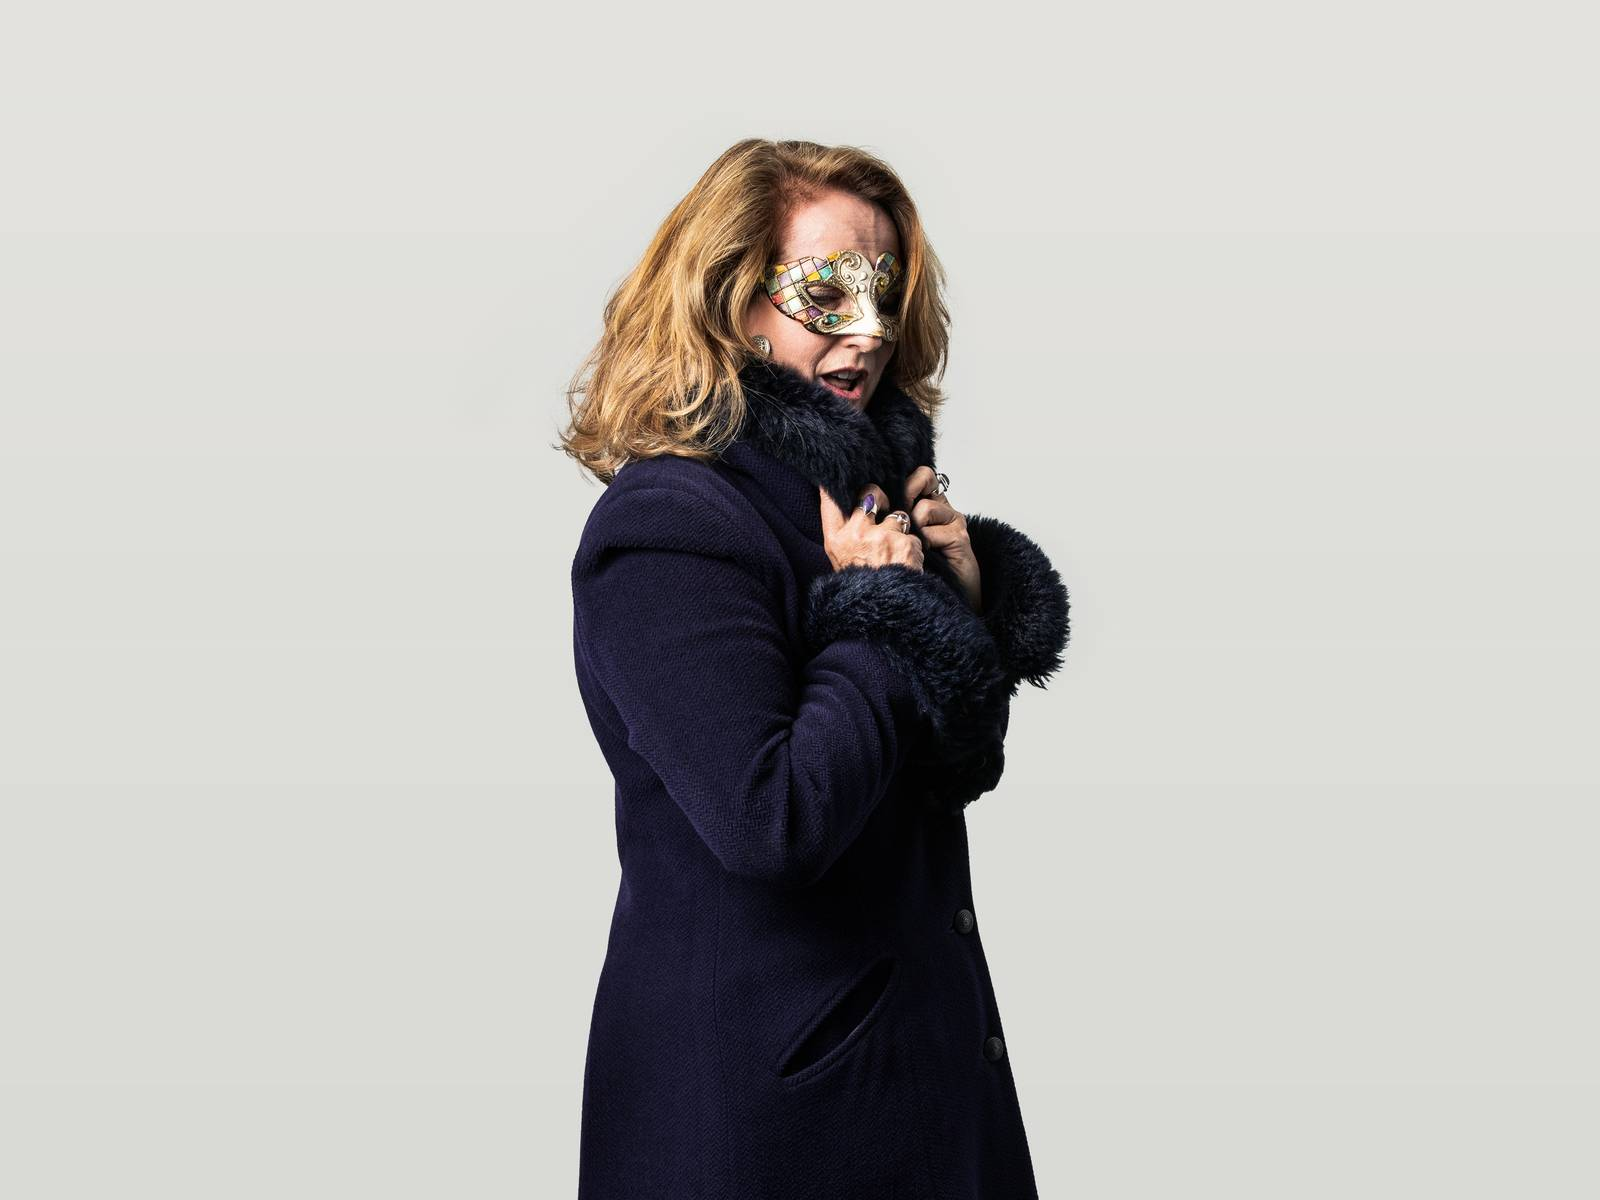 Sharon in a mask